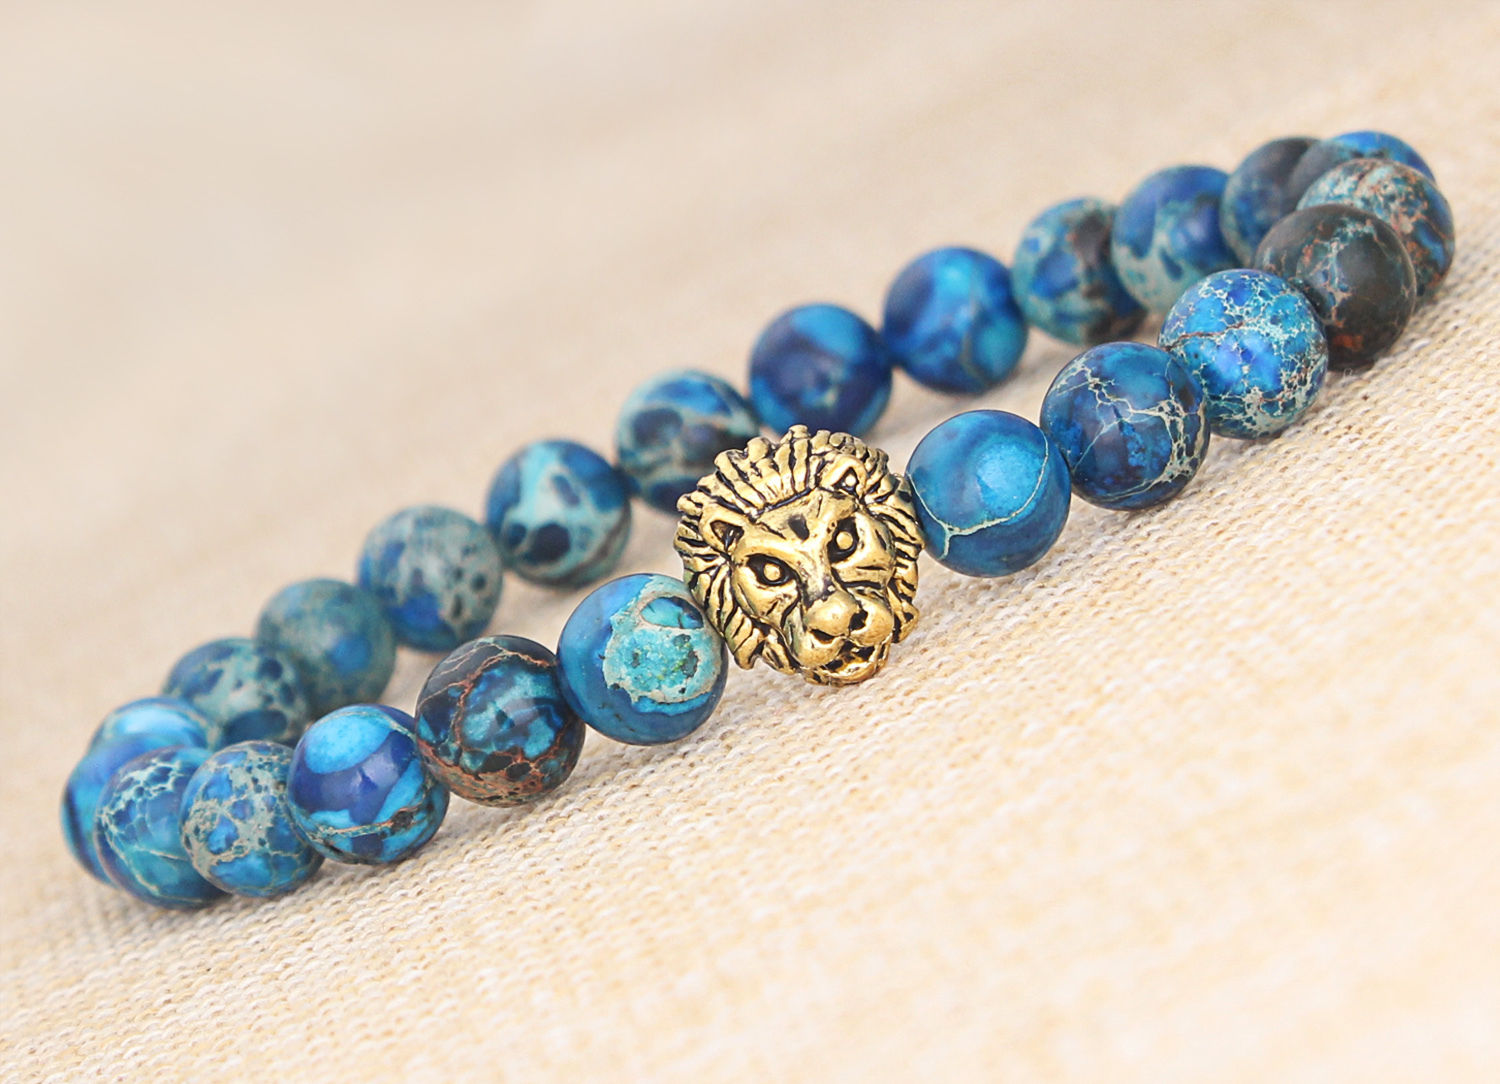 Blue Sea Sediment Jasper Stone Gold Lion Bracelet 8 In